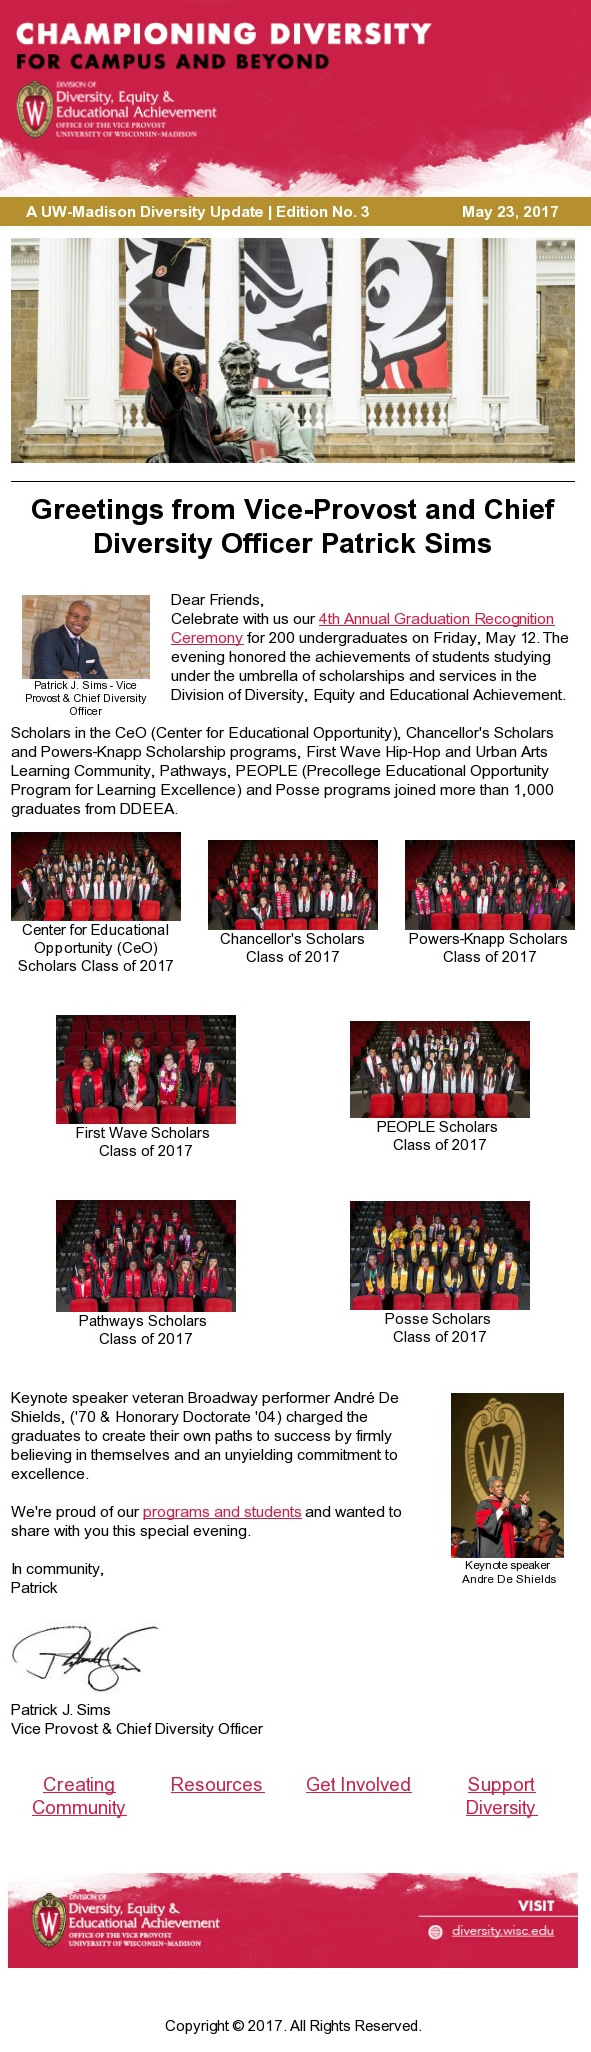 Championing Diversity (Division of Diversity Equity and Educational Achievement Newsletter) snap shot static image